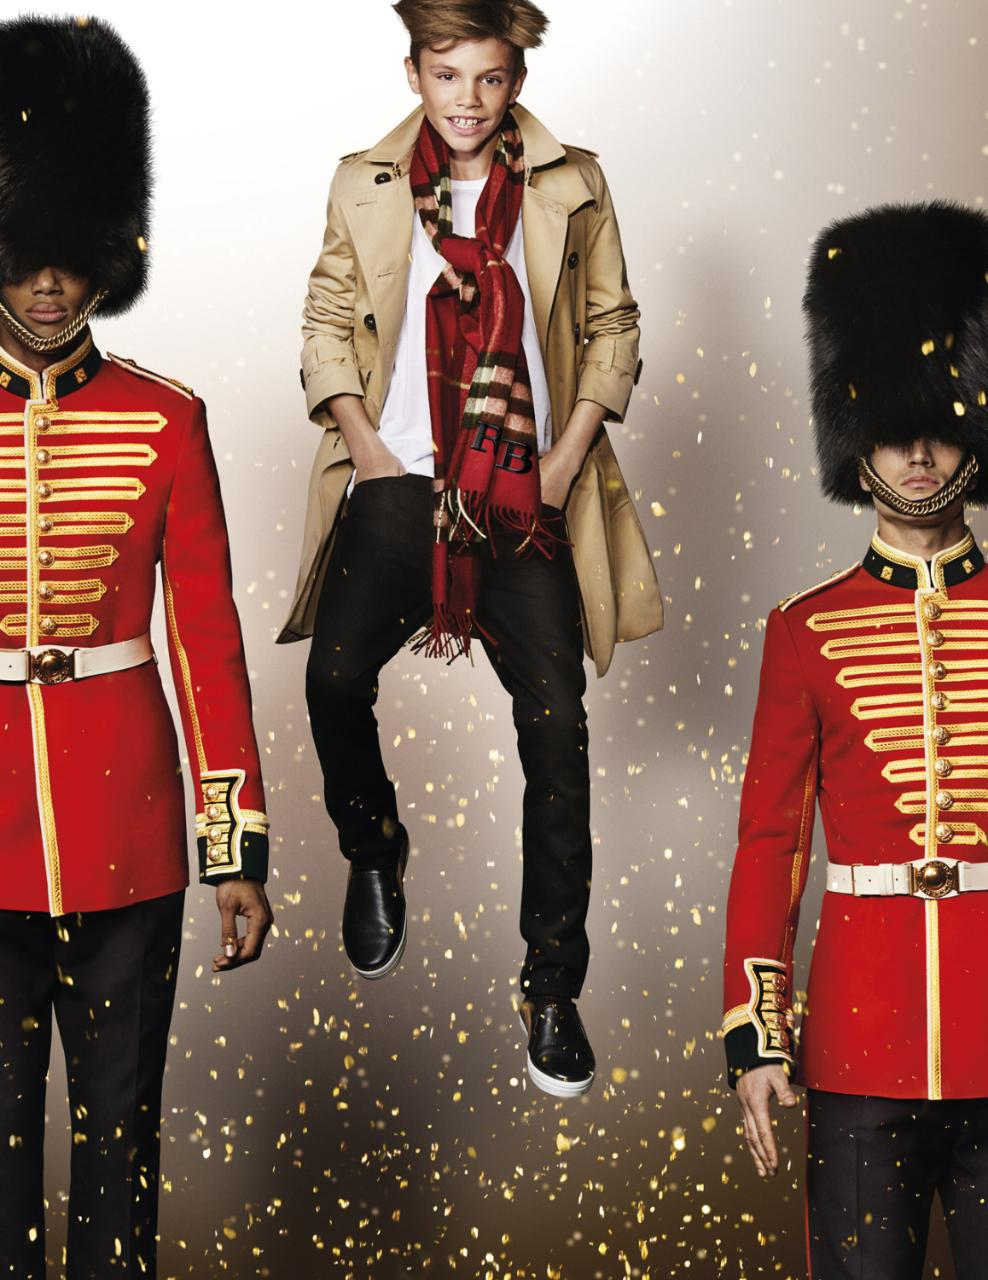 burberry-pays-tribute-to-billy-elliot-with-christmas-campaign (12) Burberry pays tribute to Billy Elliot with Christmas campaign Burberry pays tribute to Billy Elliot with Christmas campaign burberry pays tribute to billy elliot with christmas campaign 12